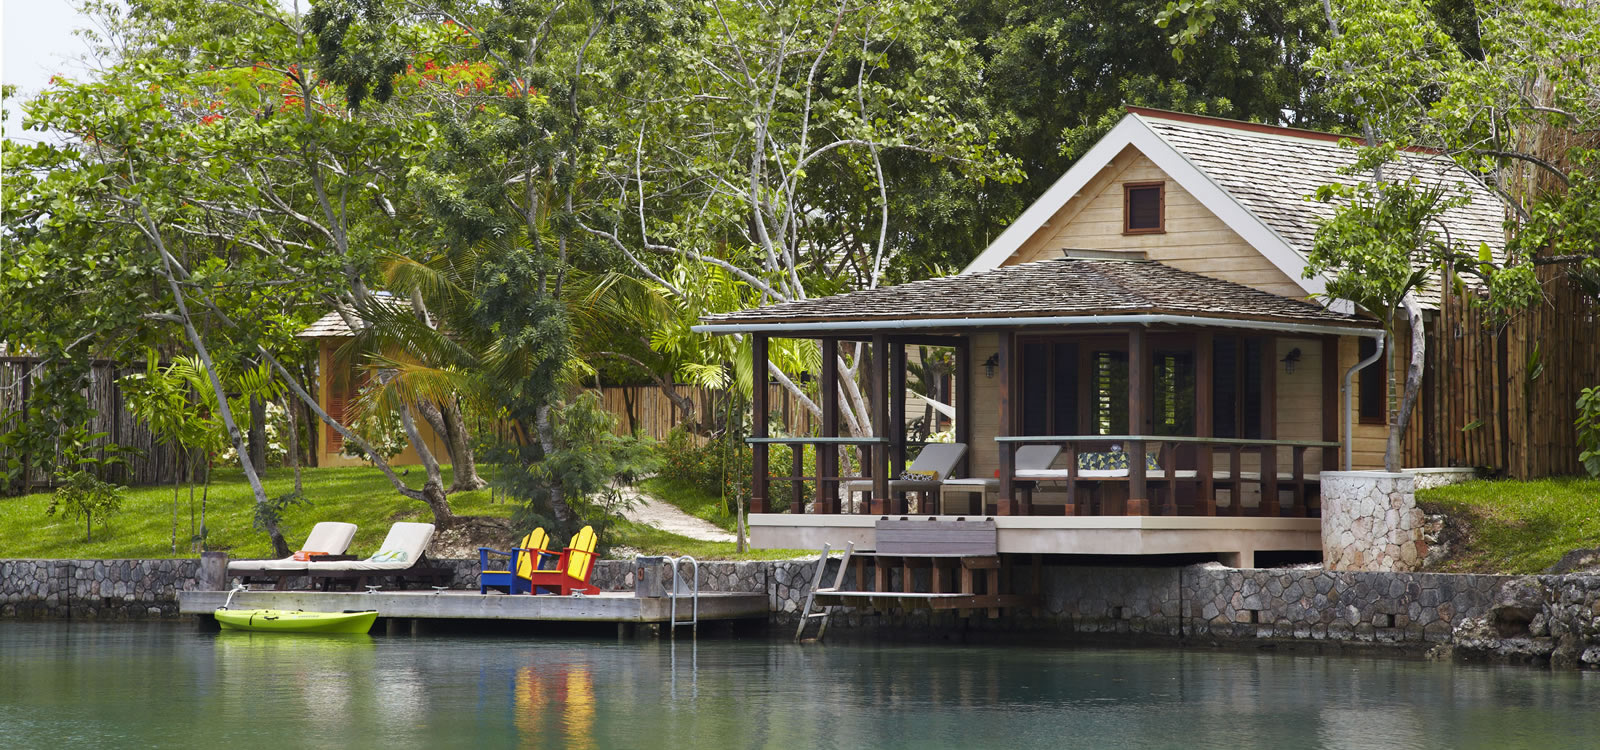 4 Bedroom Lagoon Cottages for Sale, Oracabessa, St Mary, Jamaica